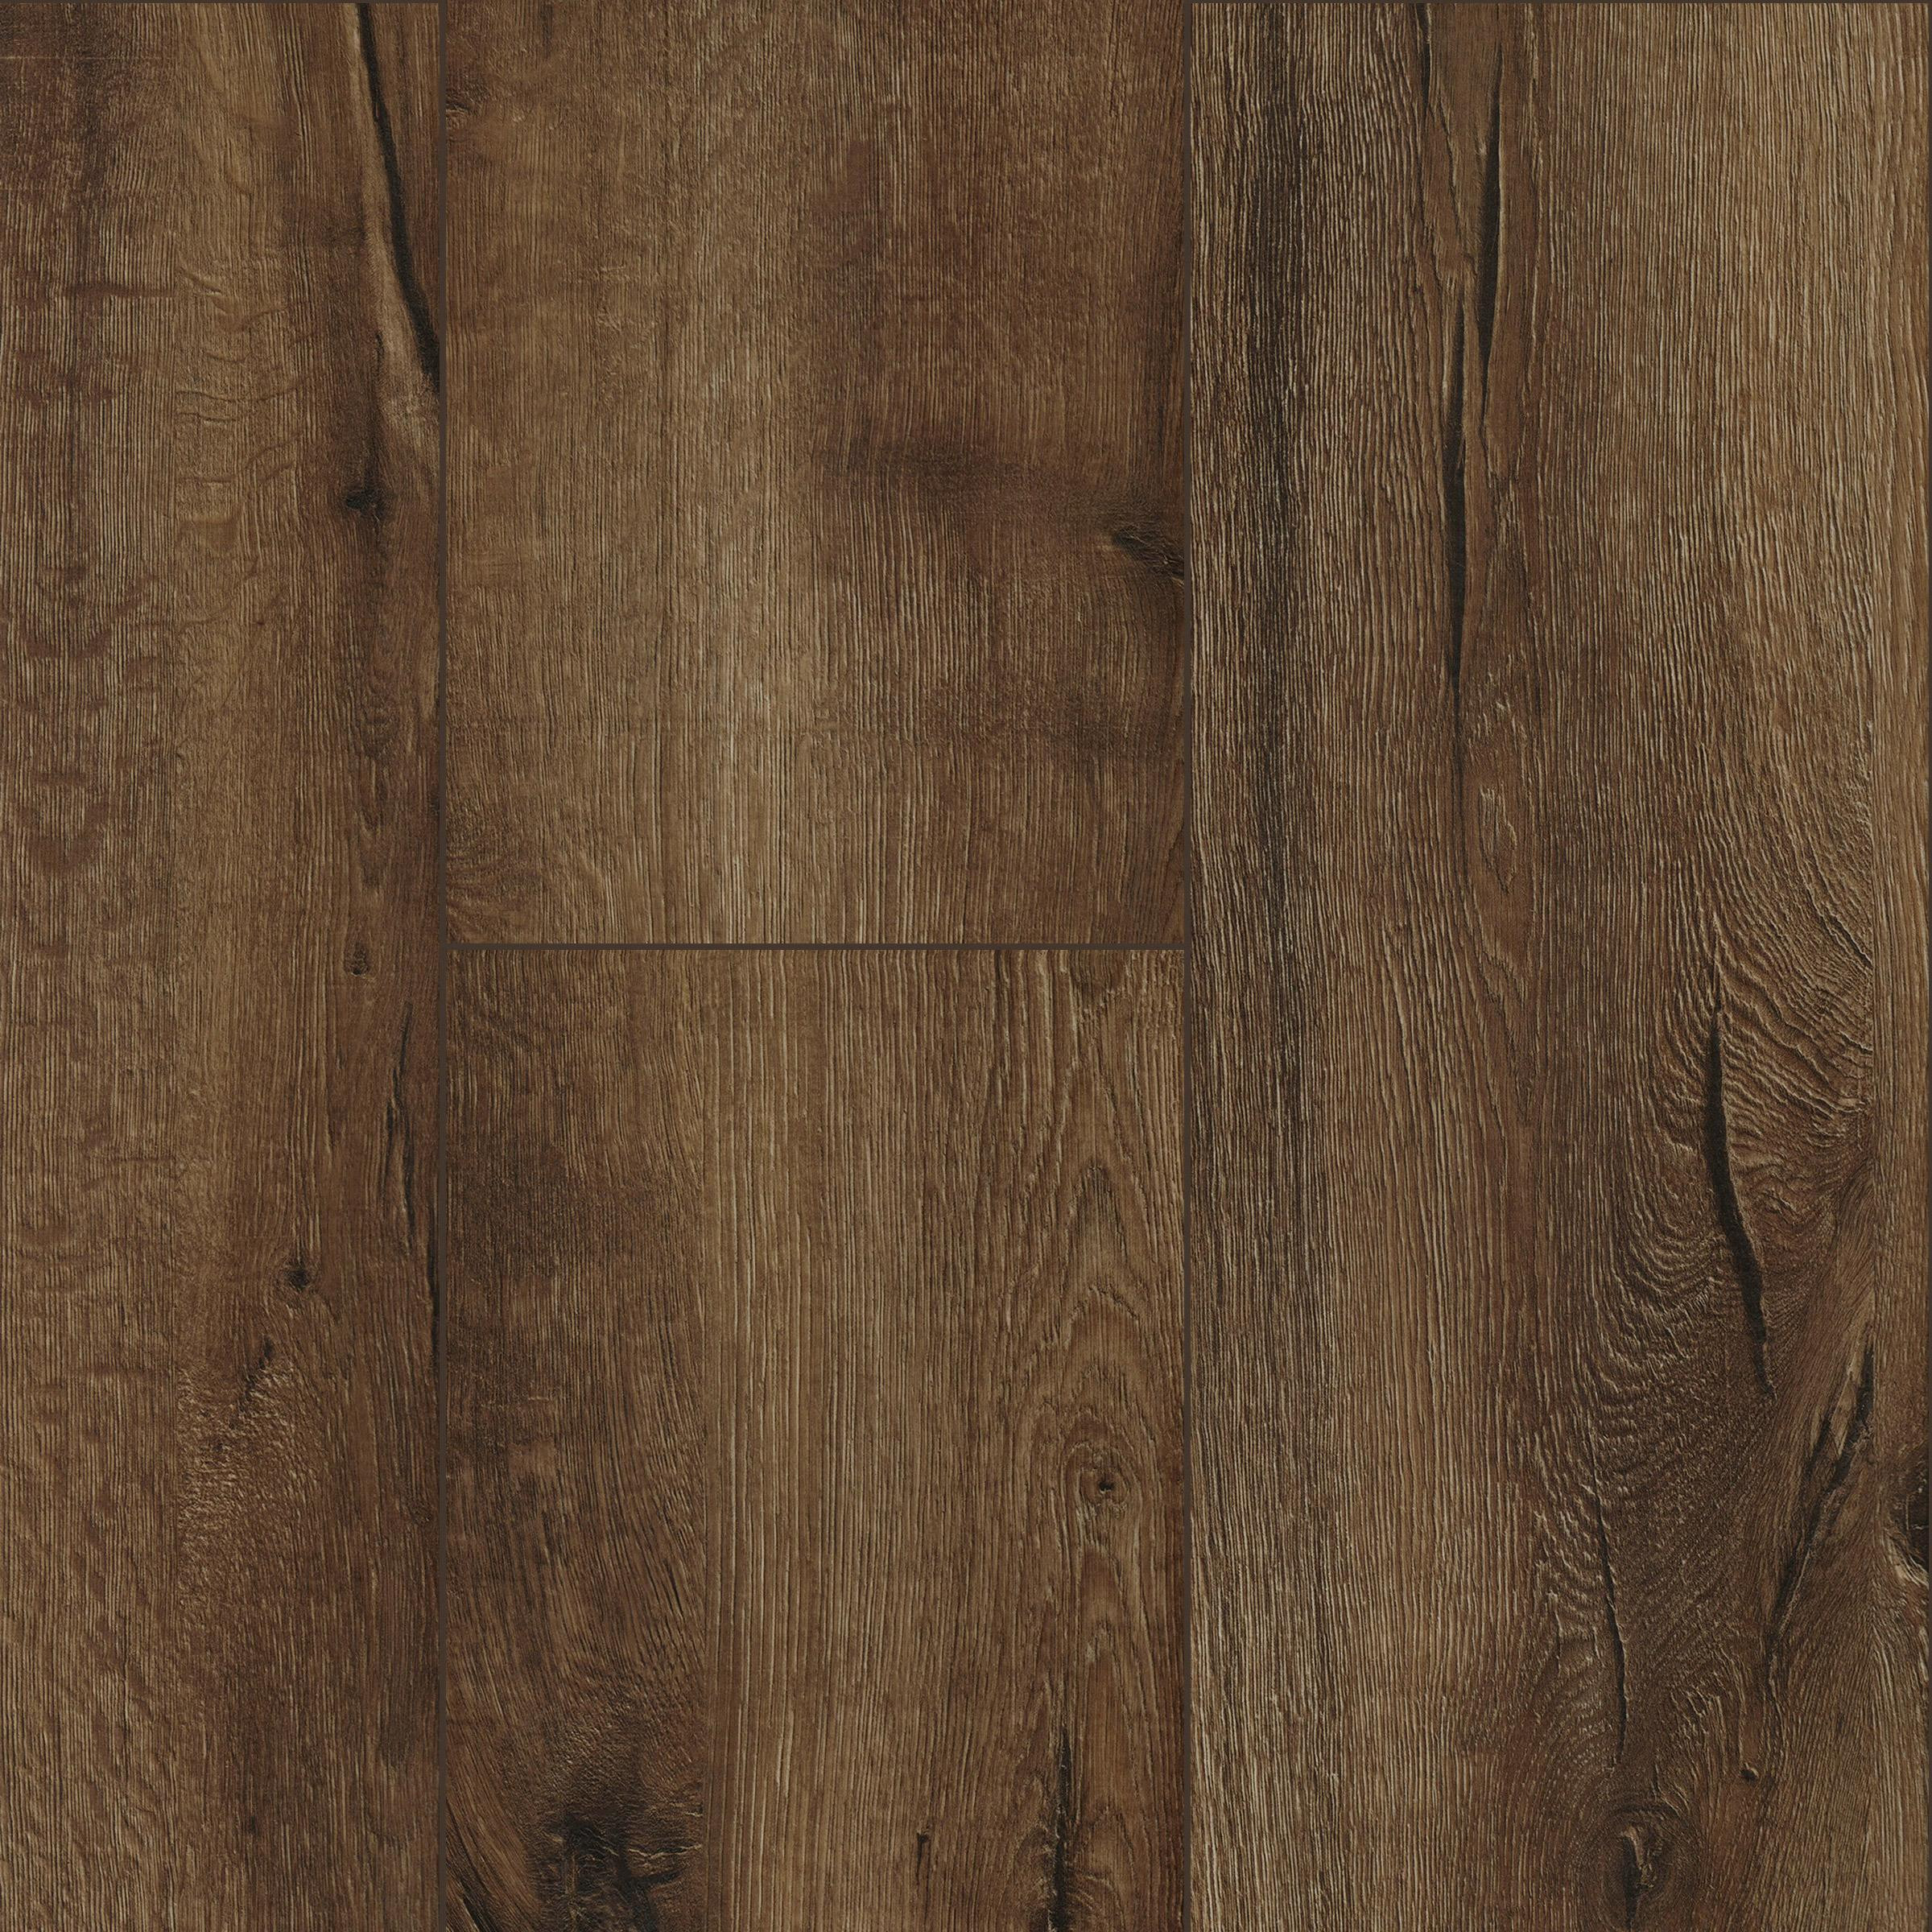 hardwood floor underlayment necessary of mohawk monticello hickory 9 wide glue down luxury vinyl plank flooring with regard to 360507 9 25 x 59 approved